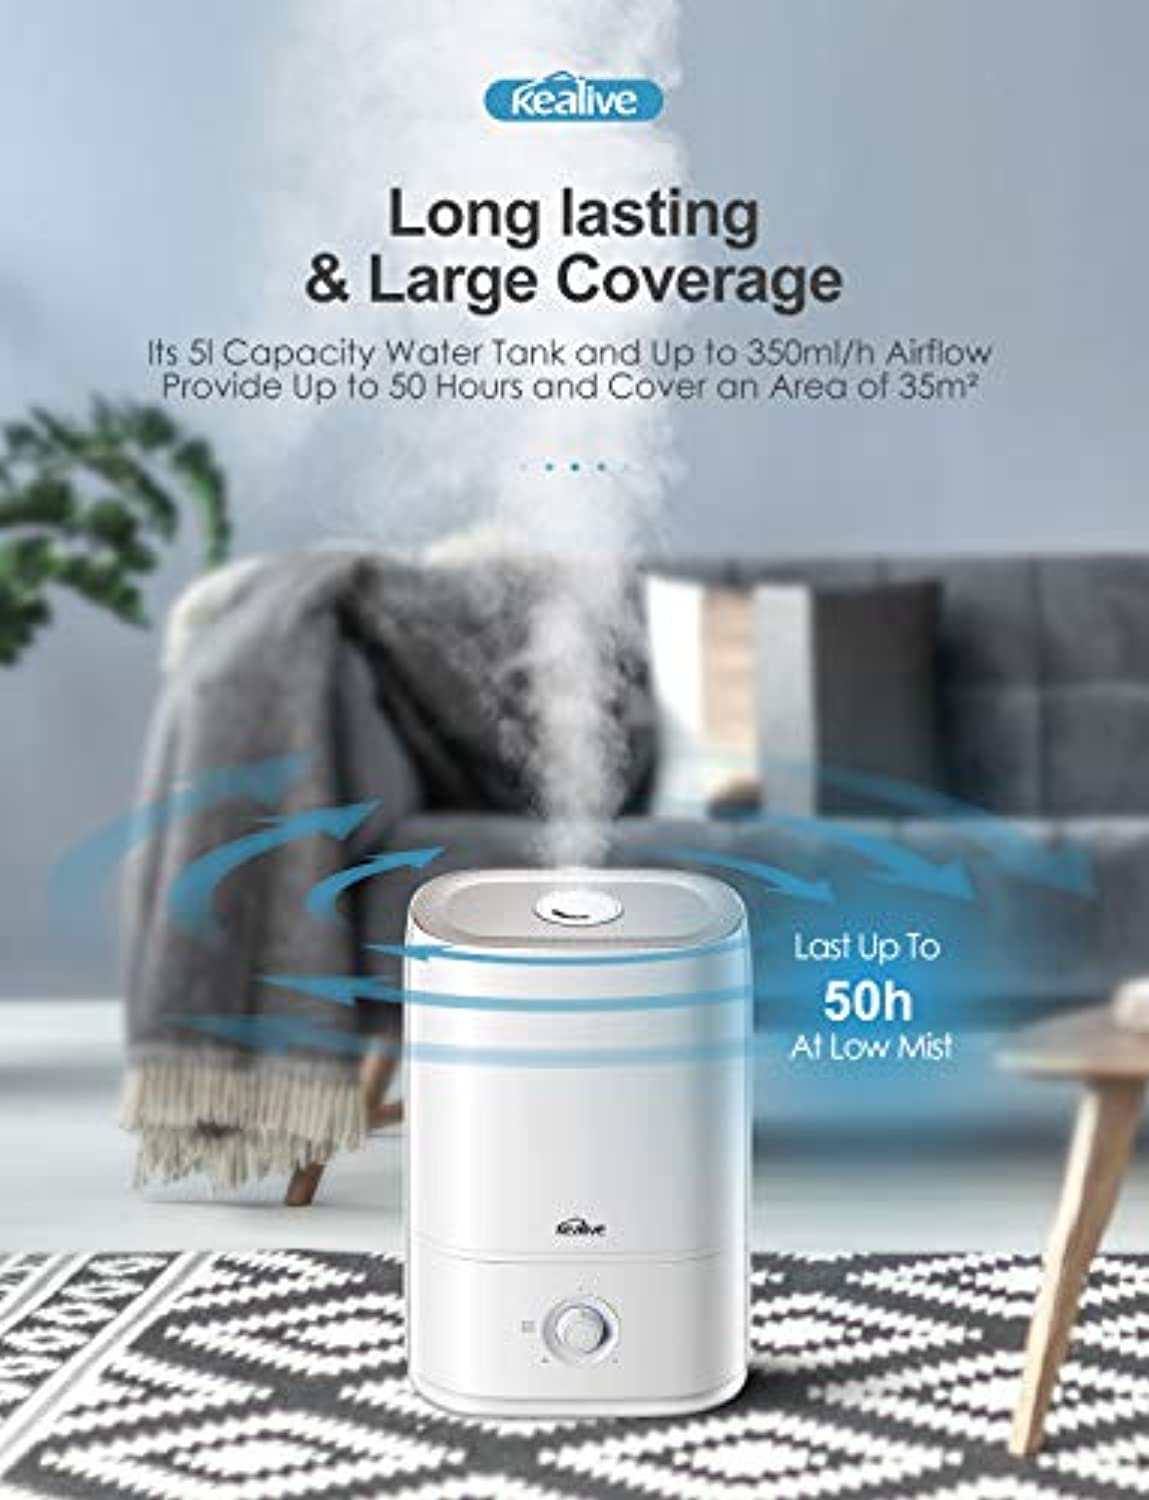 Classier: Buy kealive kealive Humidifier, 2020 Upgraded Large Room 5L Cool Mist Humidifier with Essential Oil Tray, Quick Mode Design Ultrasonic Humidifiers for Bedroom, Easy to Fill and Clean, Quiet Operation